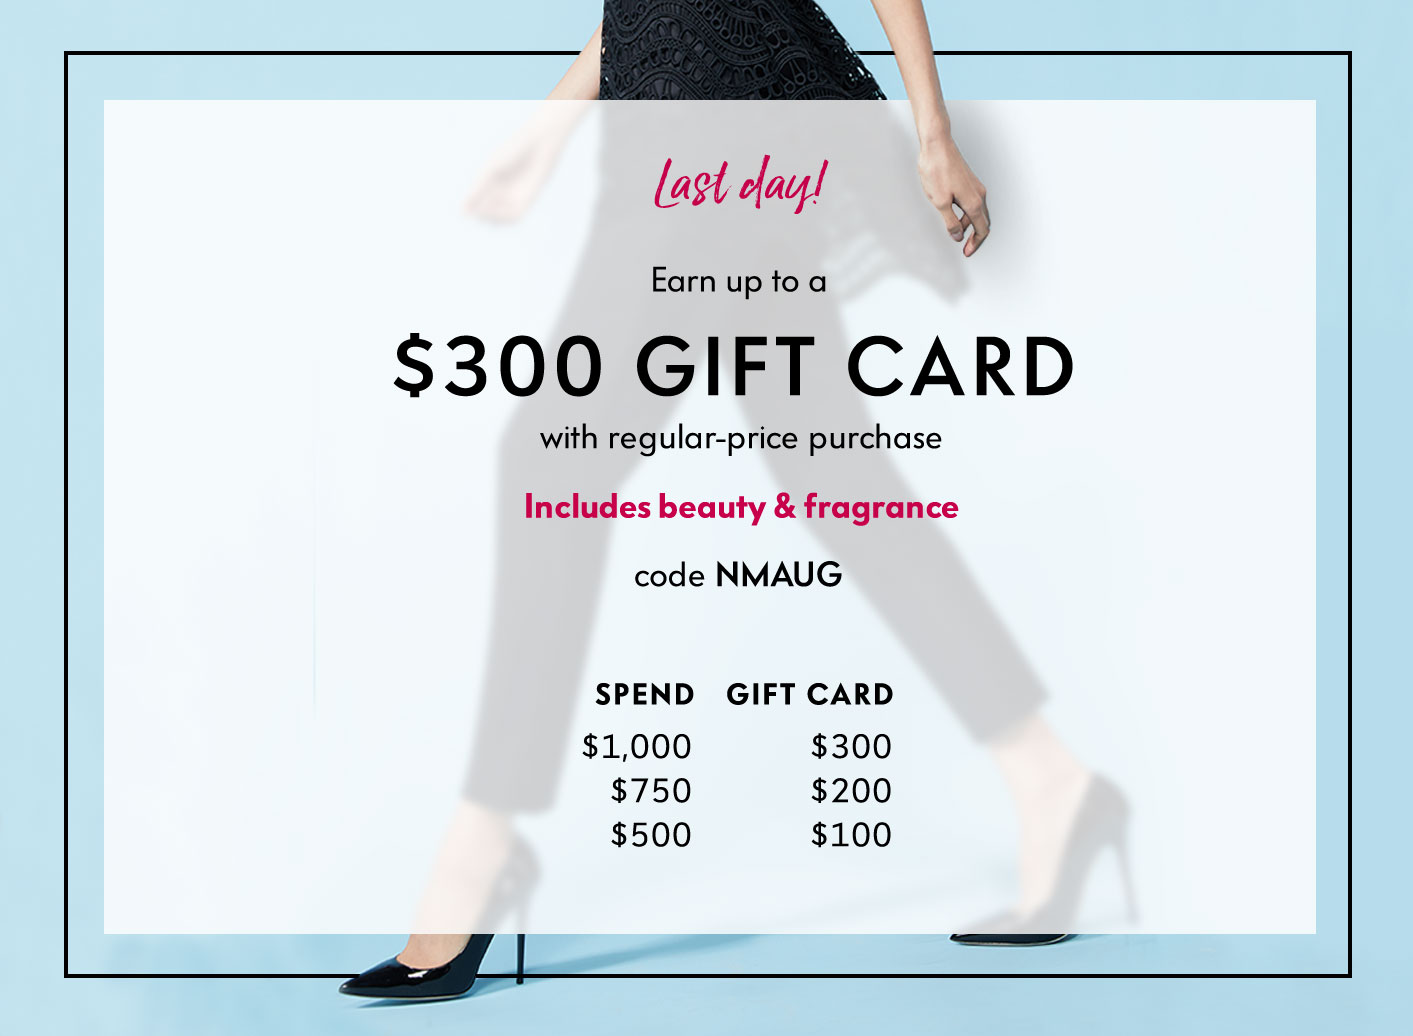 Last day! Earn up to a $300 Gift Card with regular-price purchase - Includes beauty & fragrance - code NMAUG